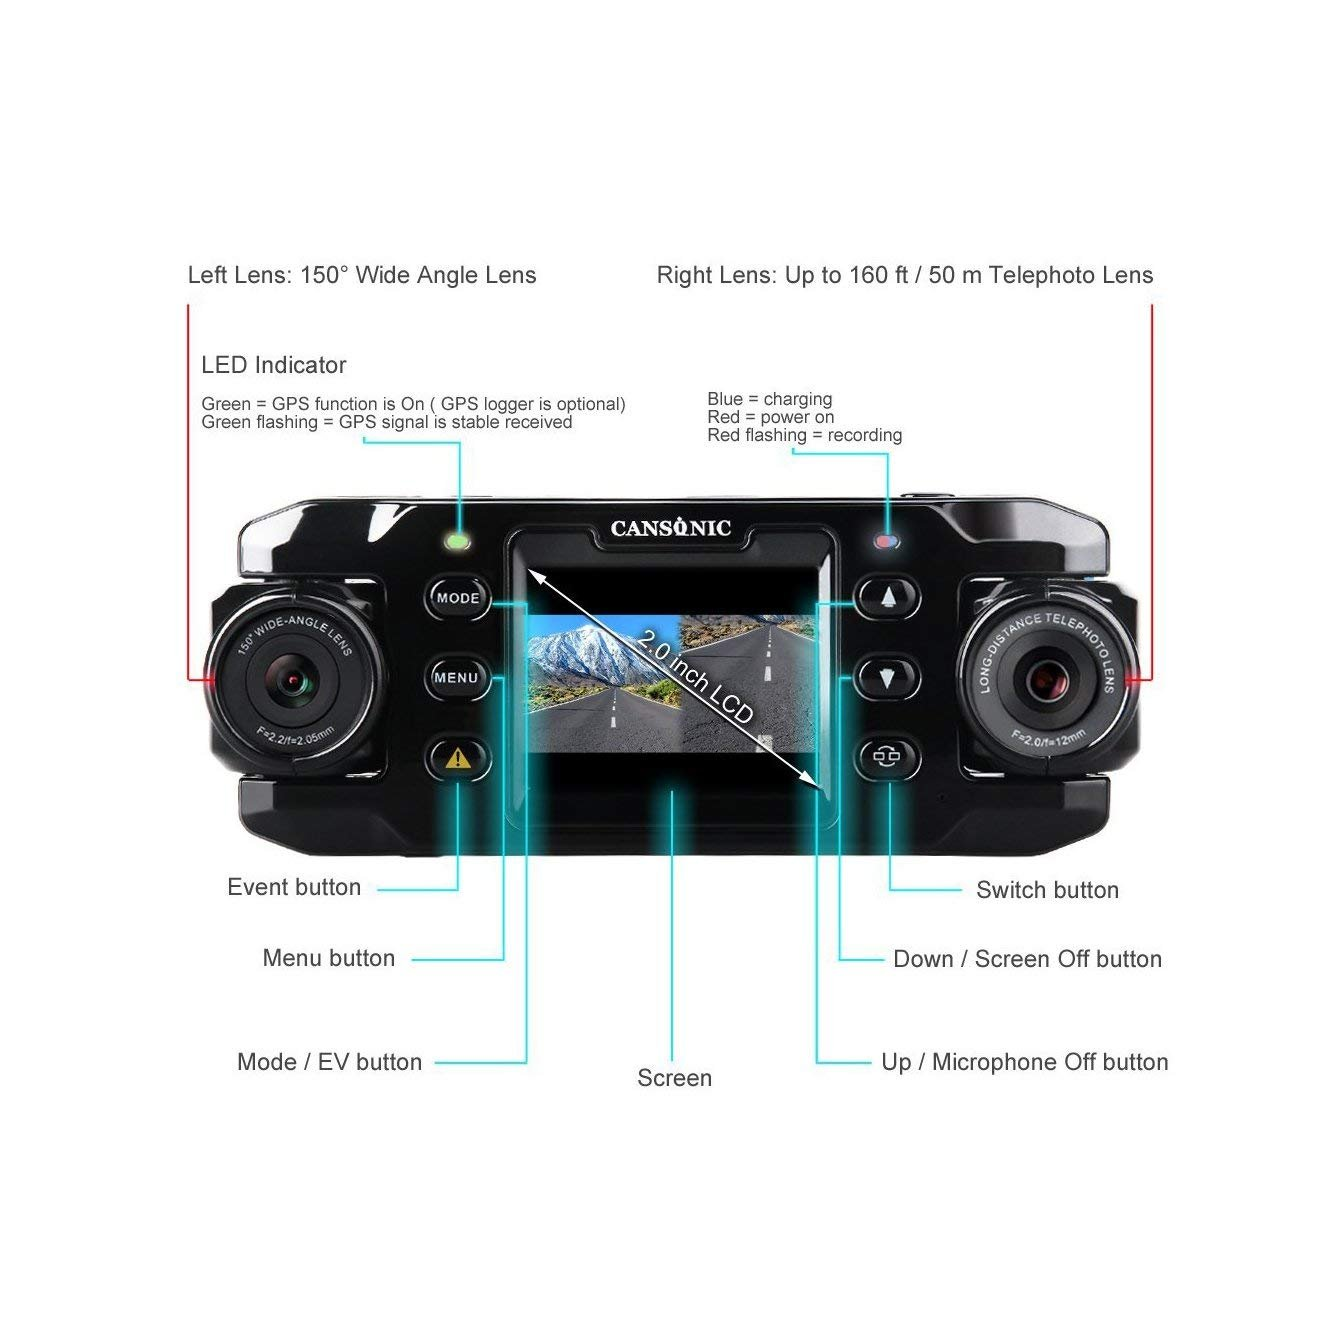 Amazon.com: Cansonic UltraDuo Z1 Dual Lens Dash Cam Car Camera Dashboard Digital Driving Video Recorder HD 1080P, 150 Degree Wide Angle, 160 ft Zoom in Lens ...